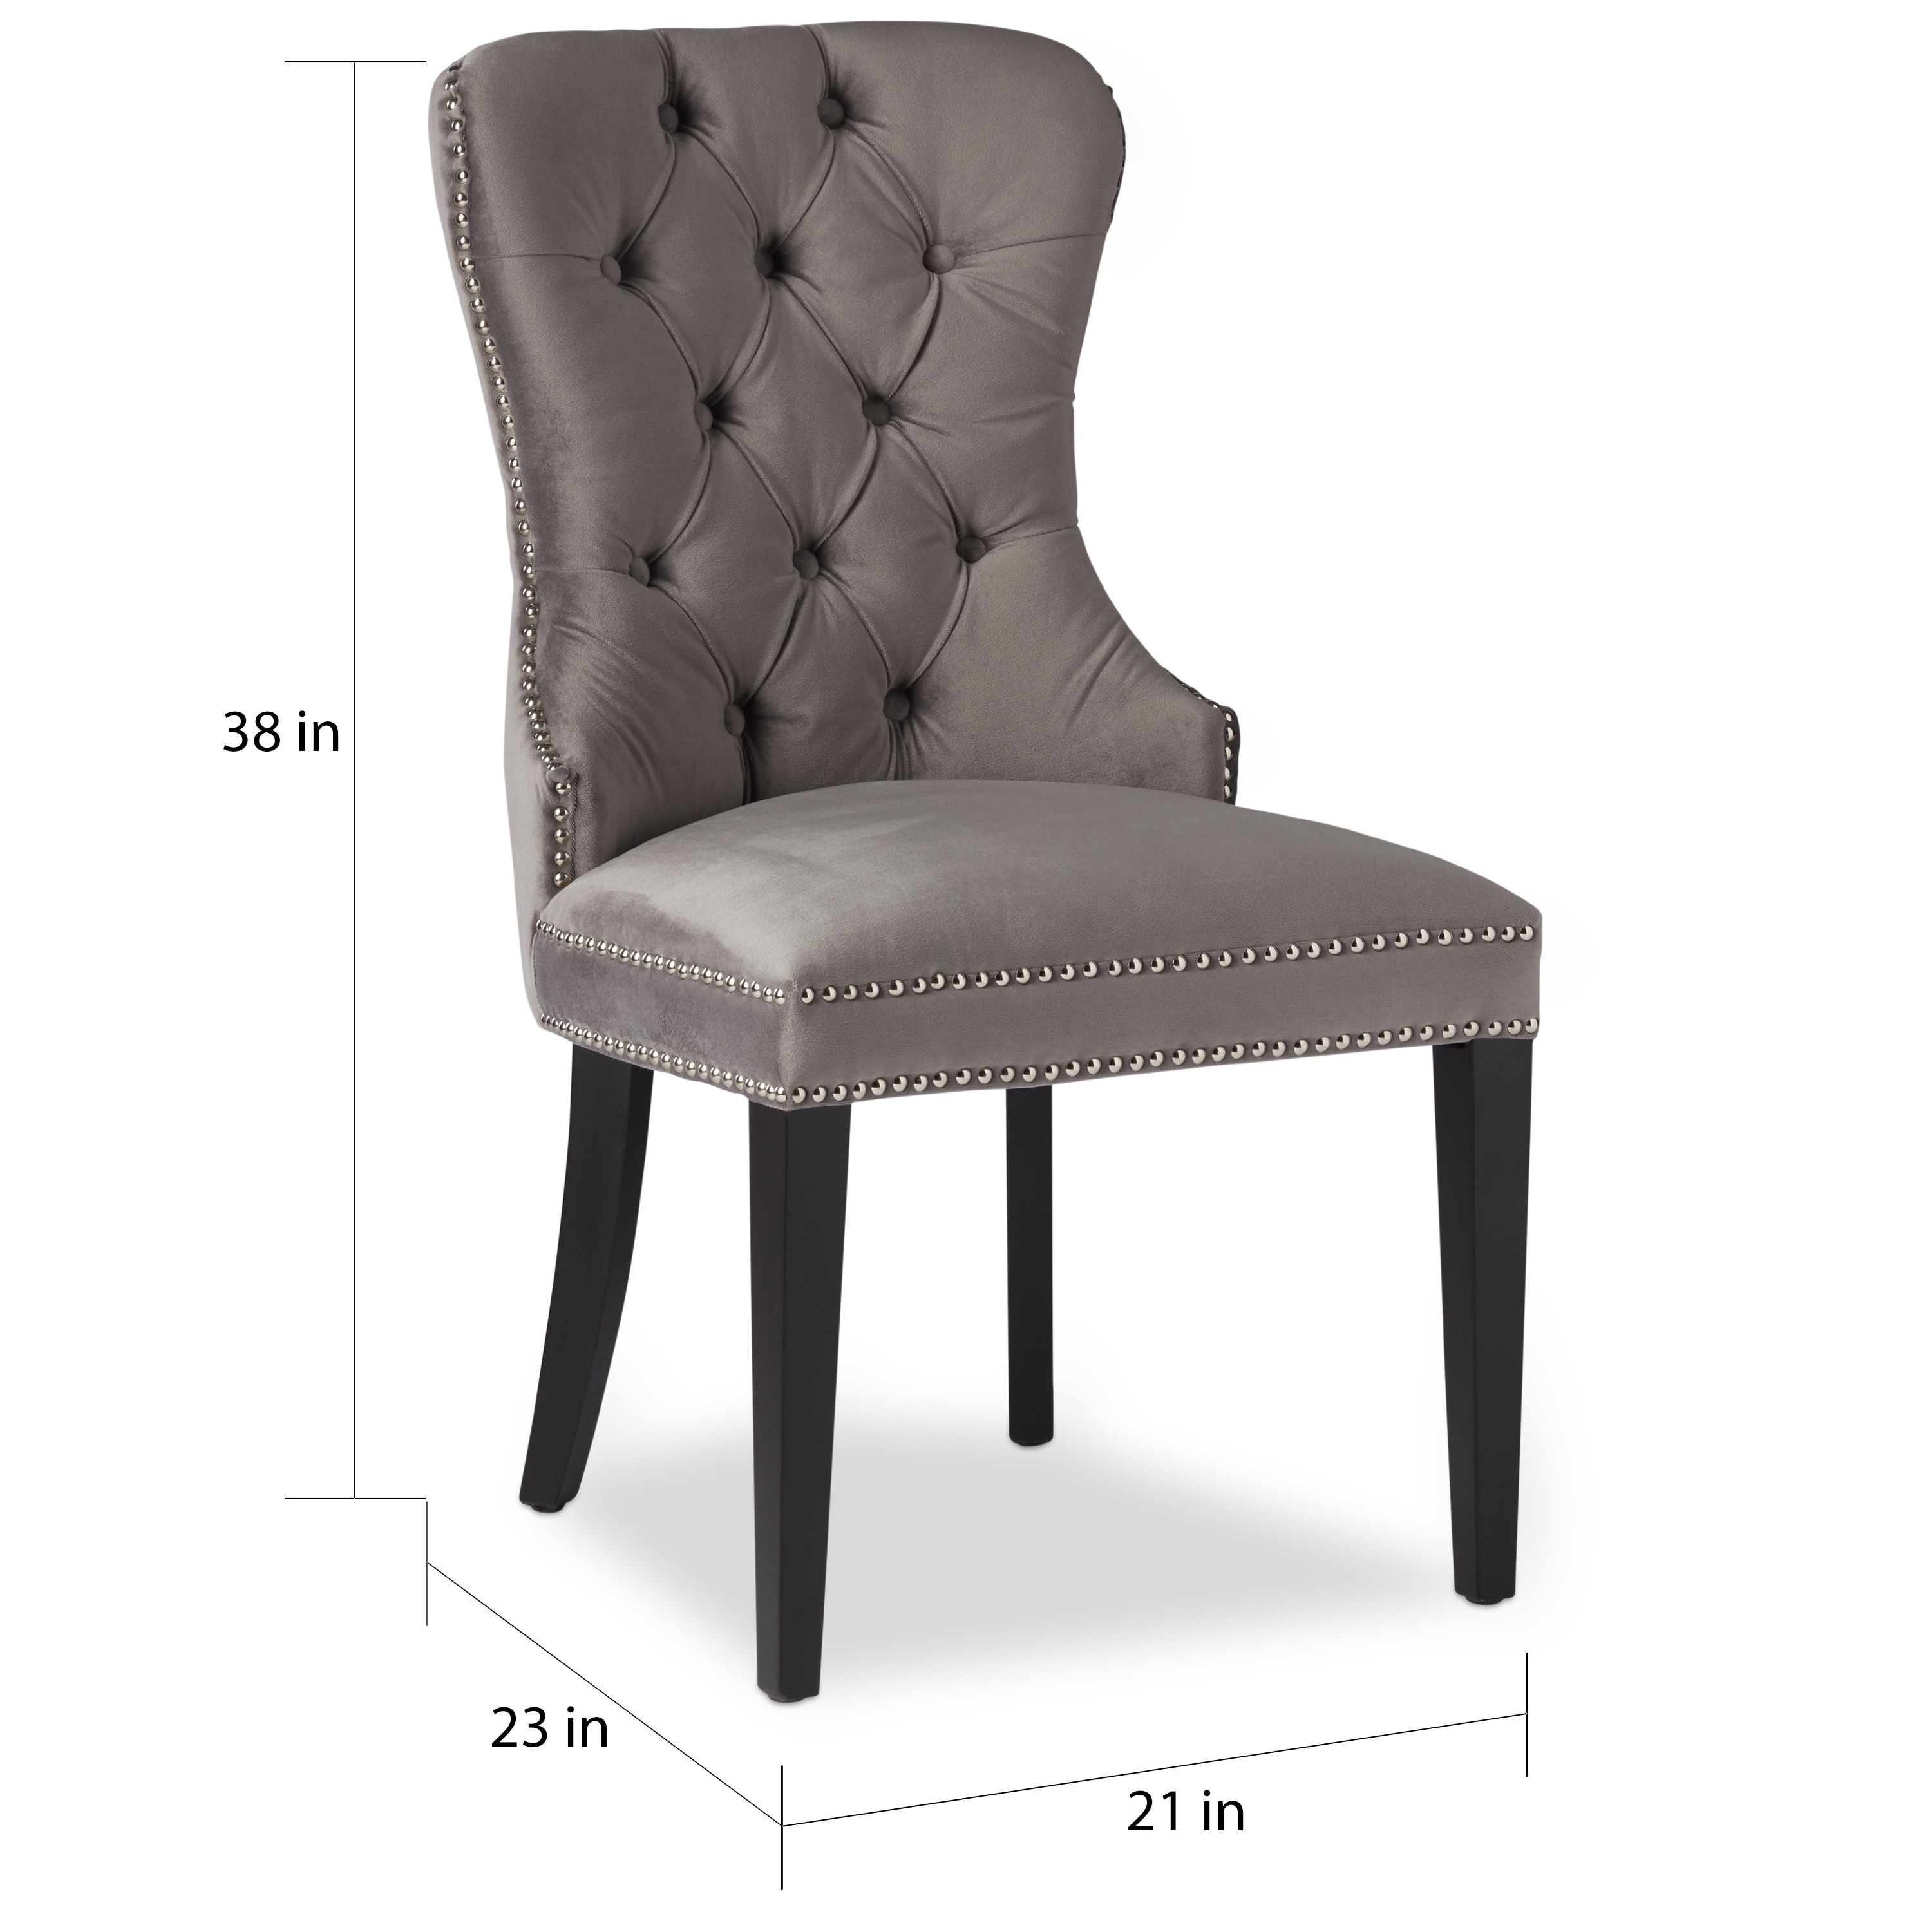 5ac4e875d86 Shop Abbyson Versailles Grey Tufted Dining Chair - On Sale - Free Shipping  Today - Overstock - 10855757